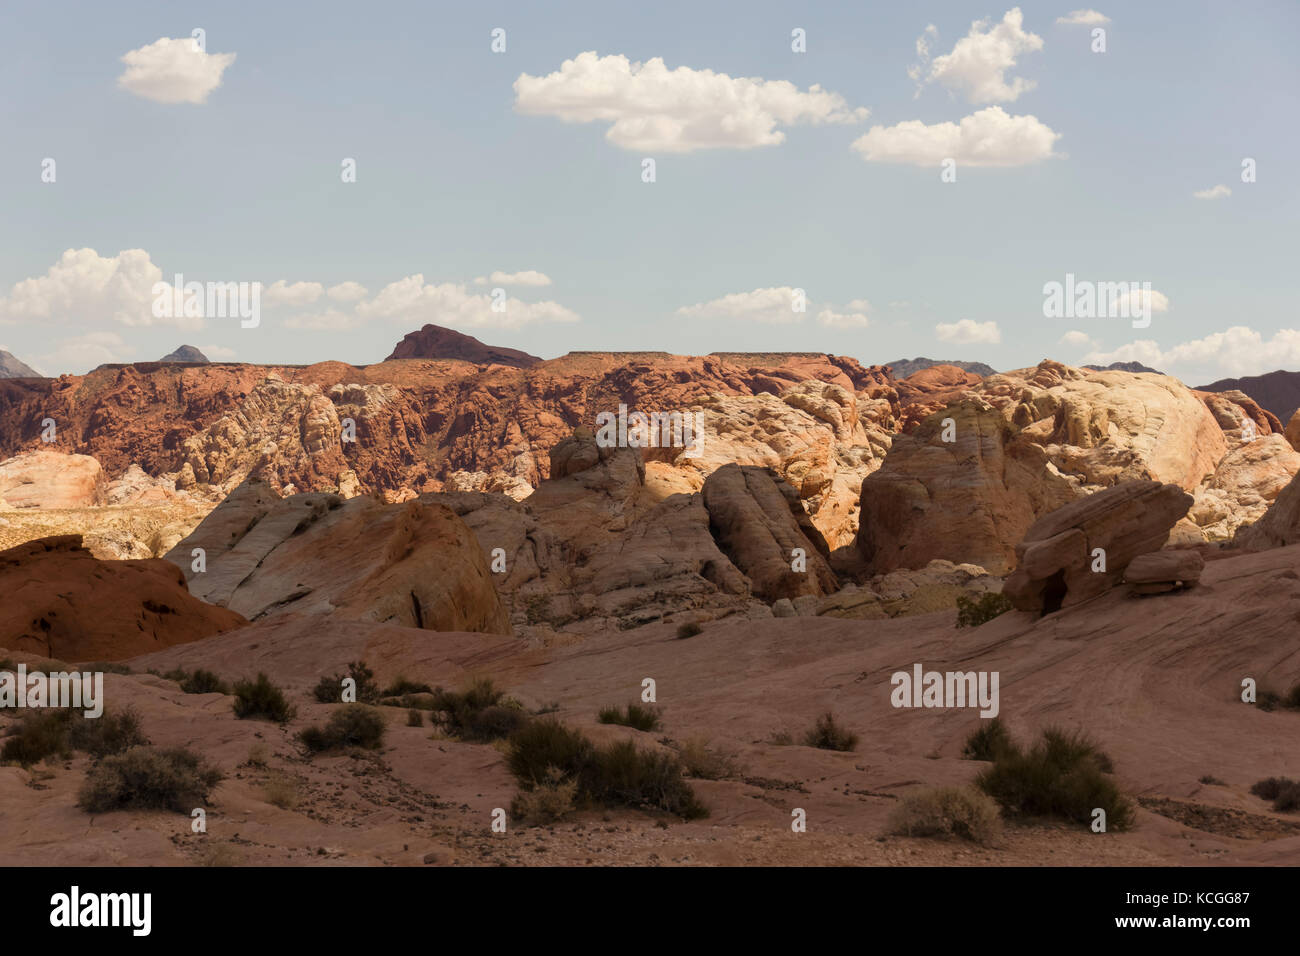 A desolated section of The Valley of Fire, Nevada - Stock Image